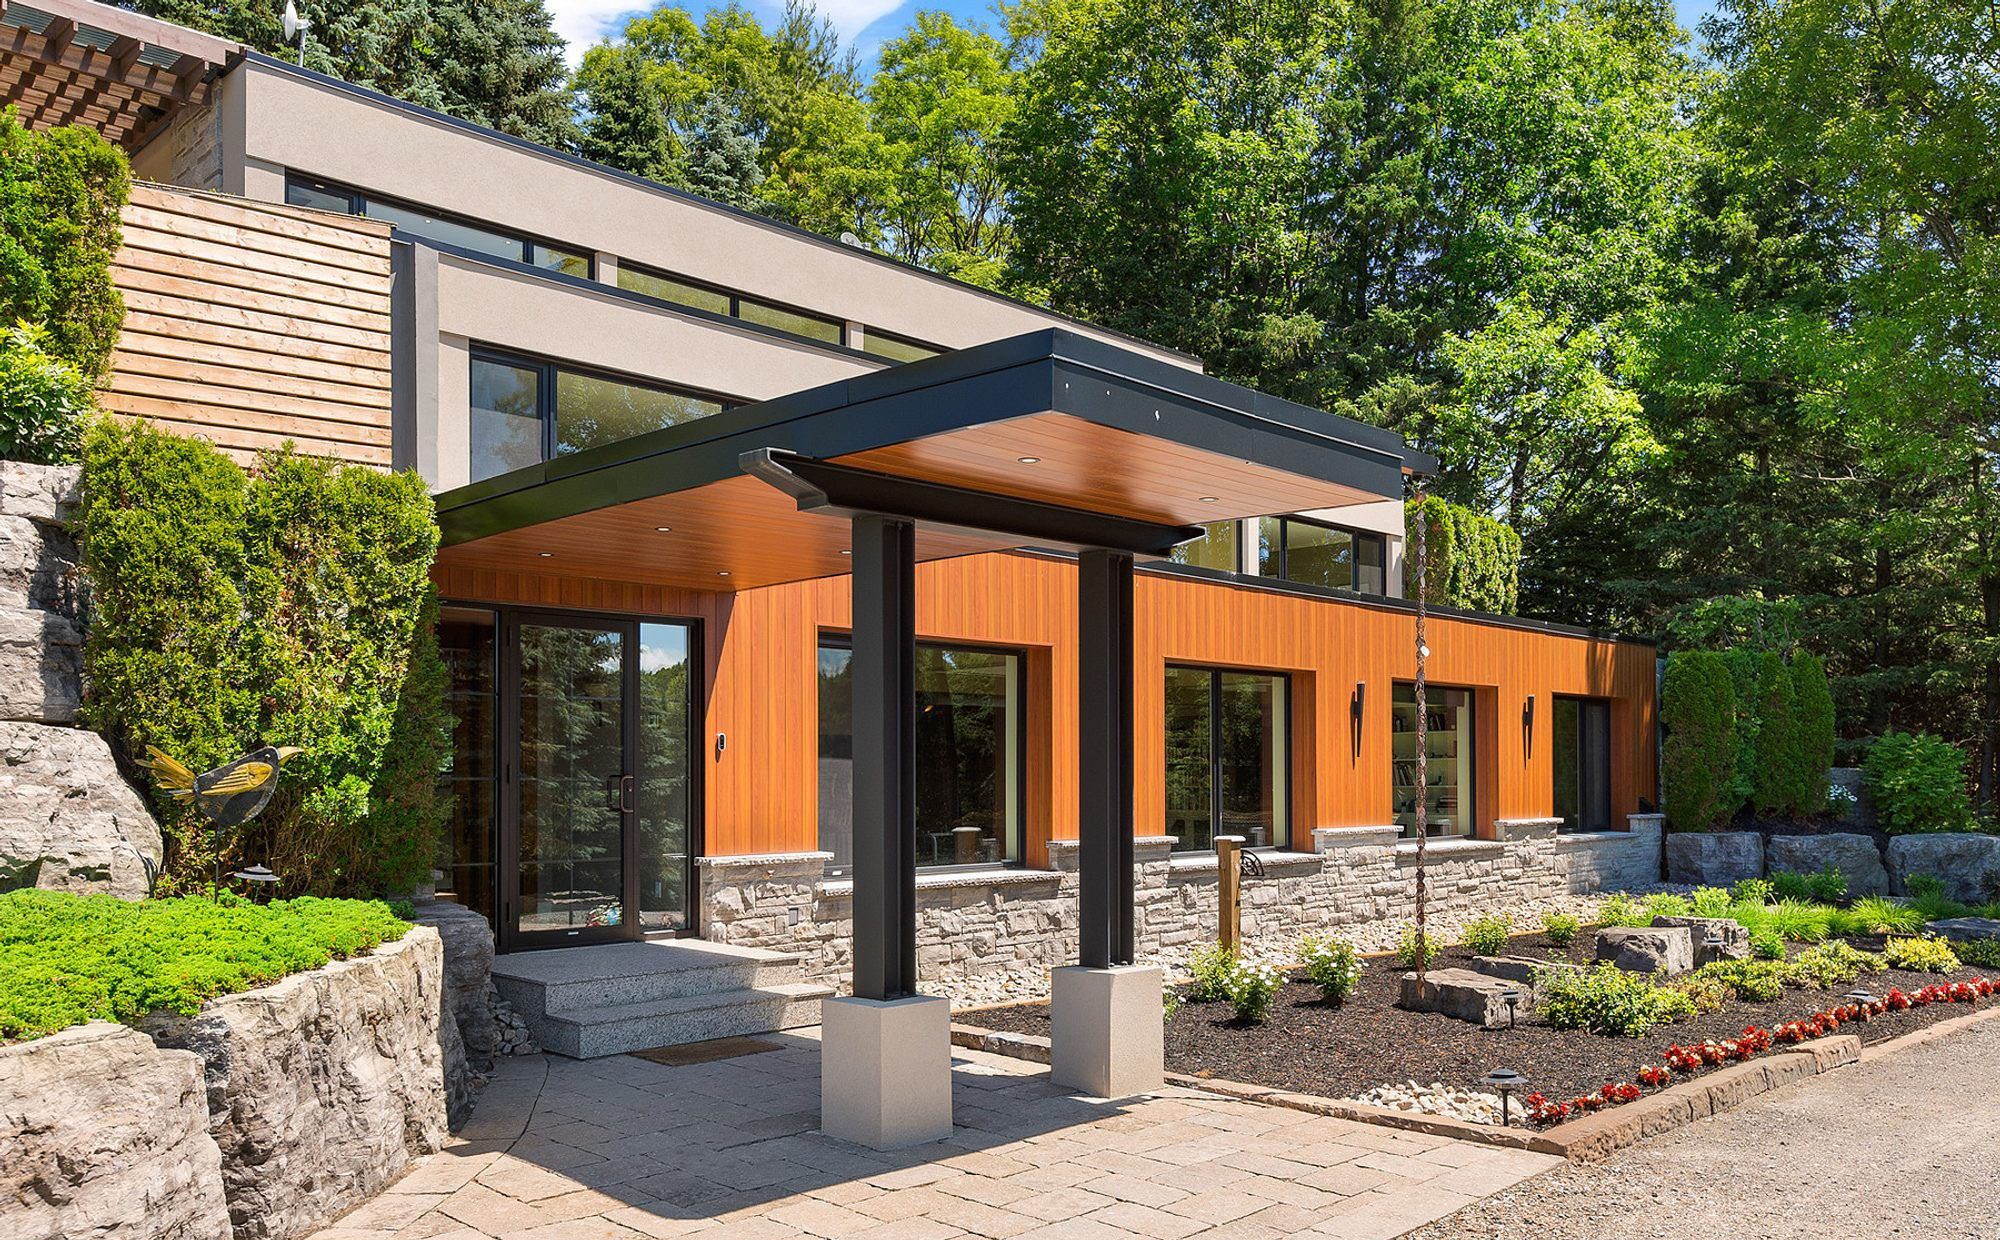 Ultra modern home with a flat roof portico supported by two steel columns and concrete bases.